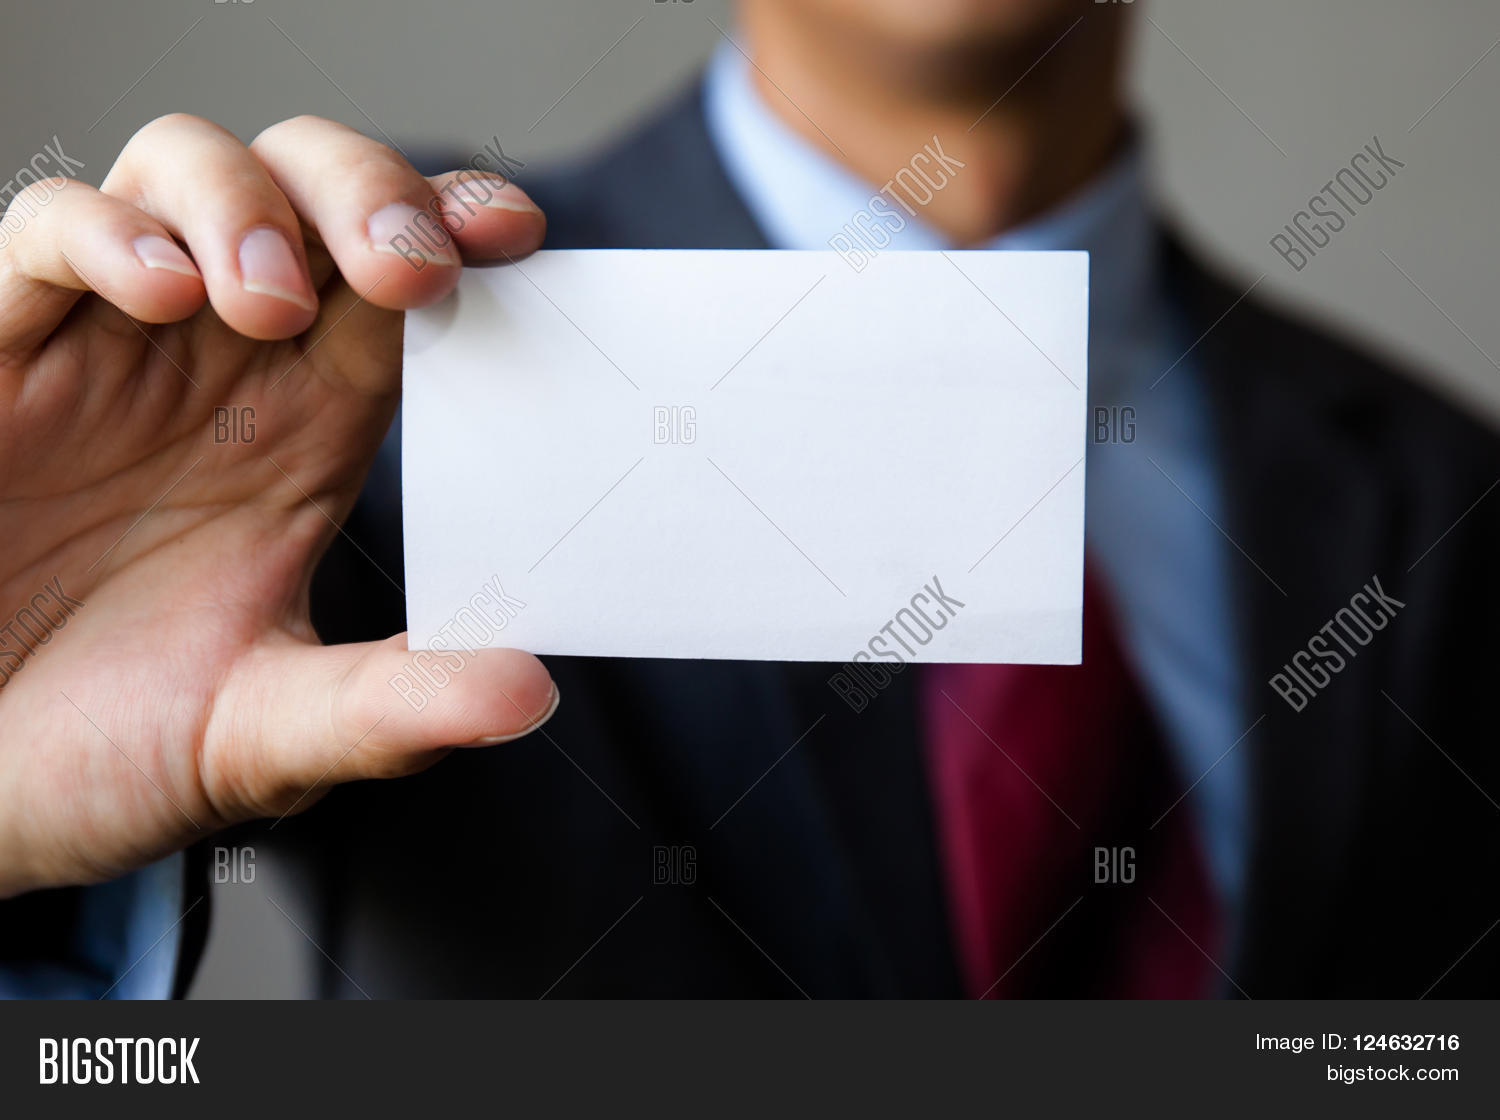 Young Man Business Suit Holding Image & Photo | Bigstock